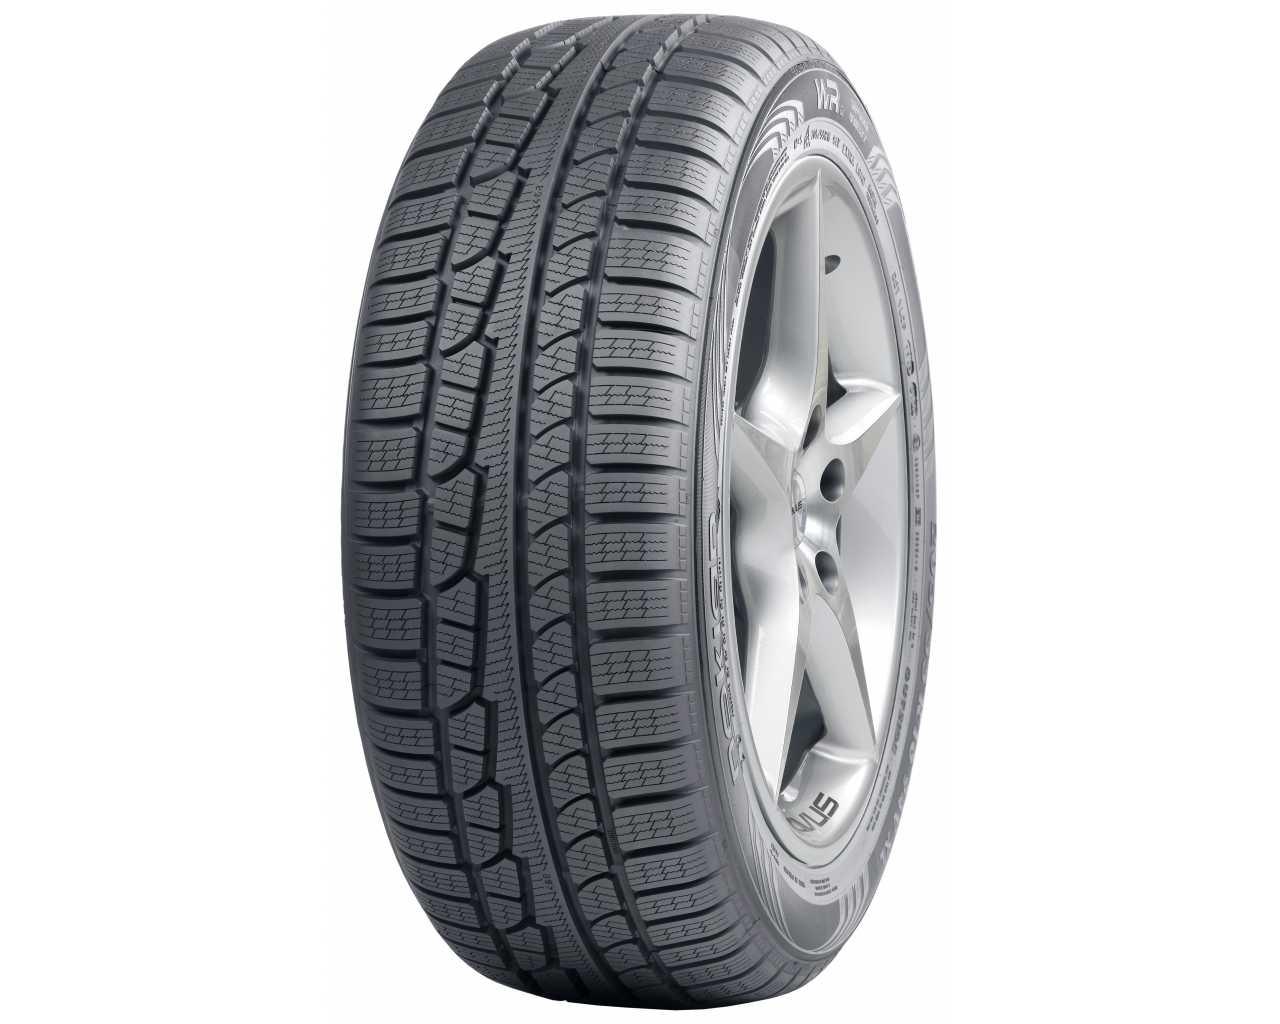 Best All Weather Tires >> 235/75R15 NOKIAN WIN WR-G2 SUV - Buy online at Agrigear ...